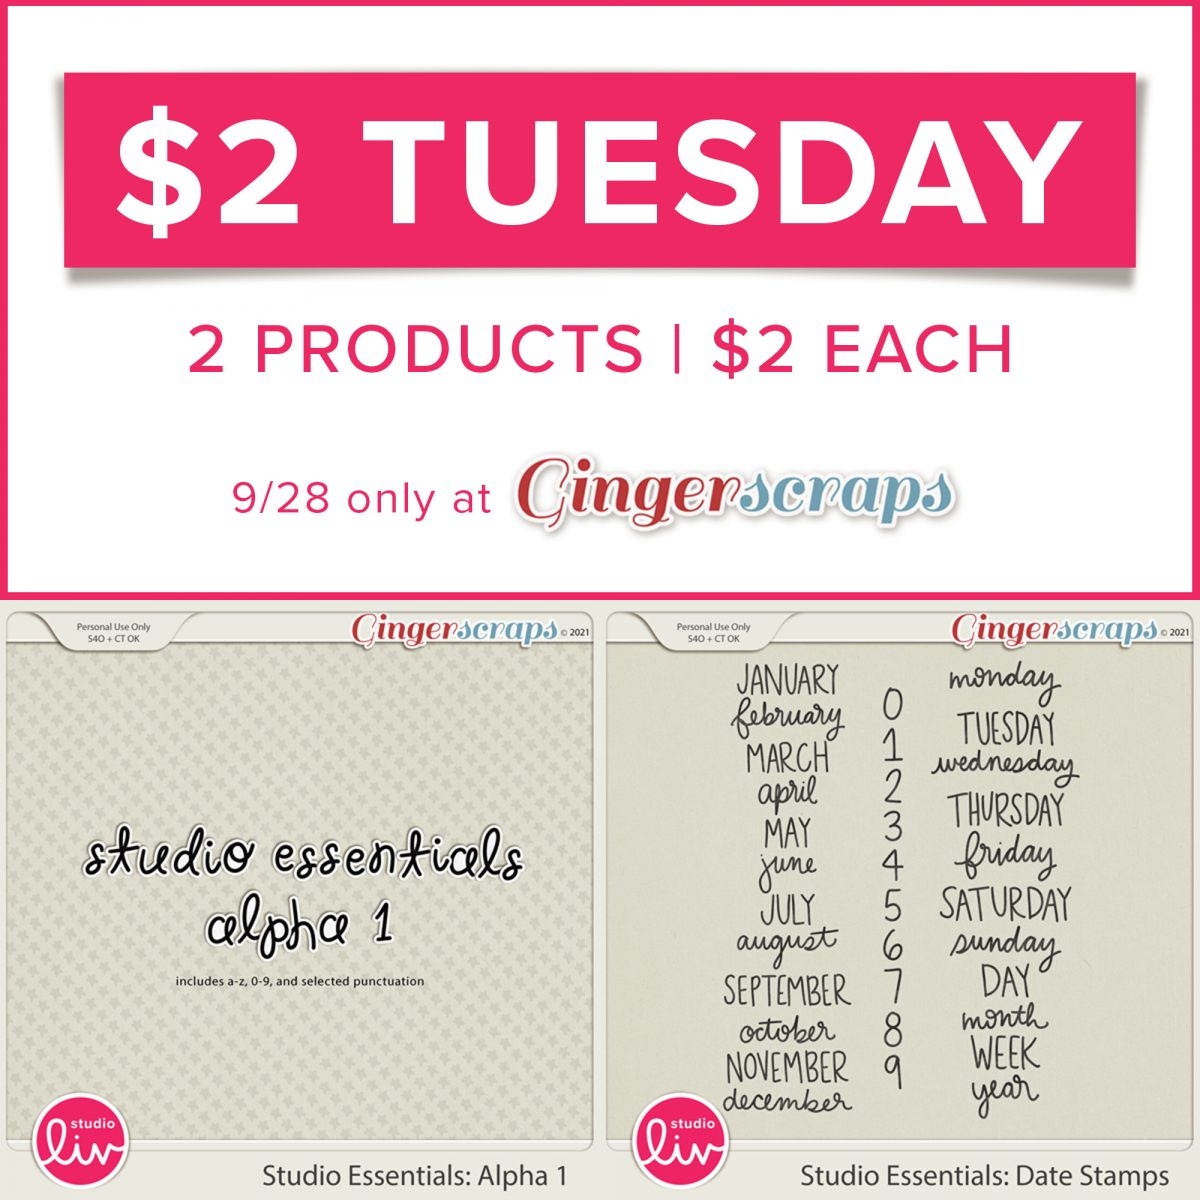 $2 Tuesday. 2 products | $2 each. 9/28 only at GingerScraps.